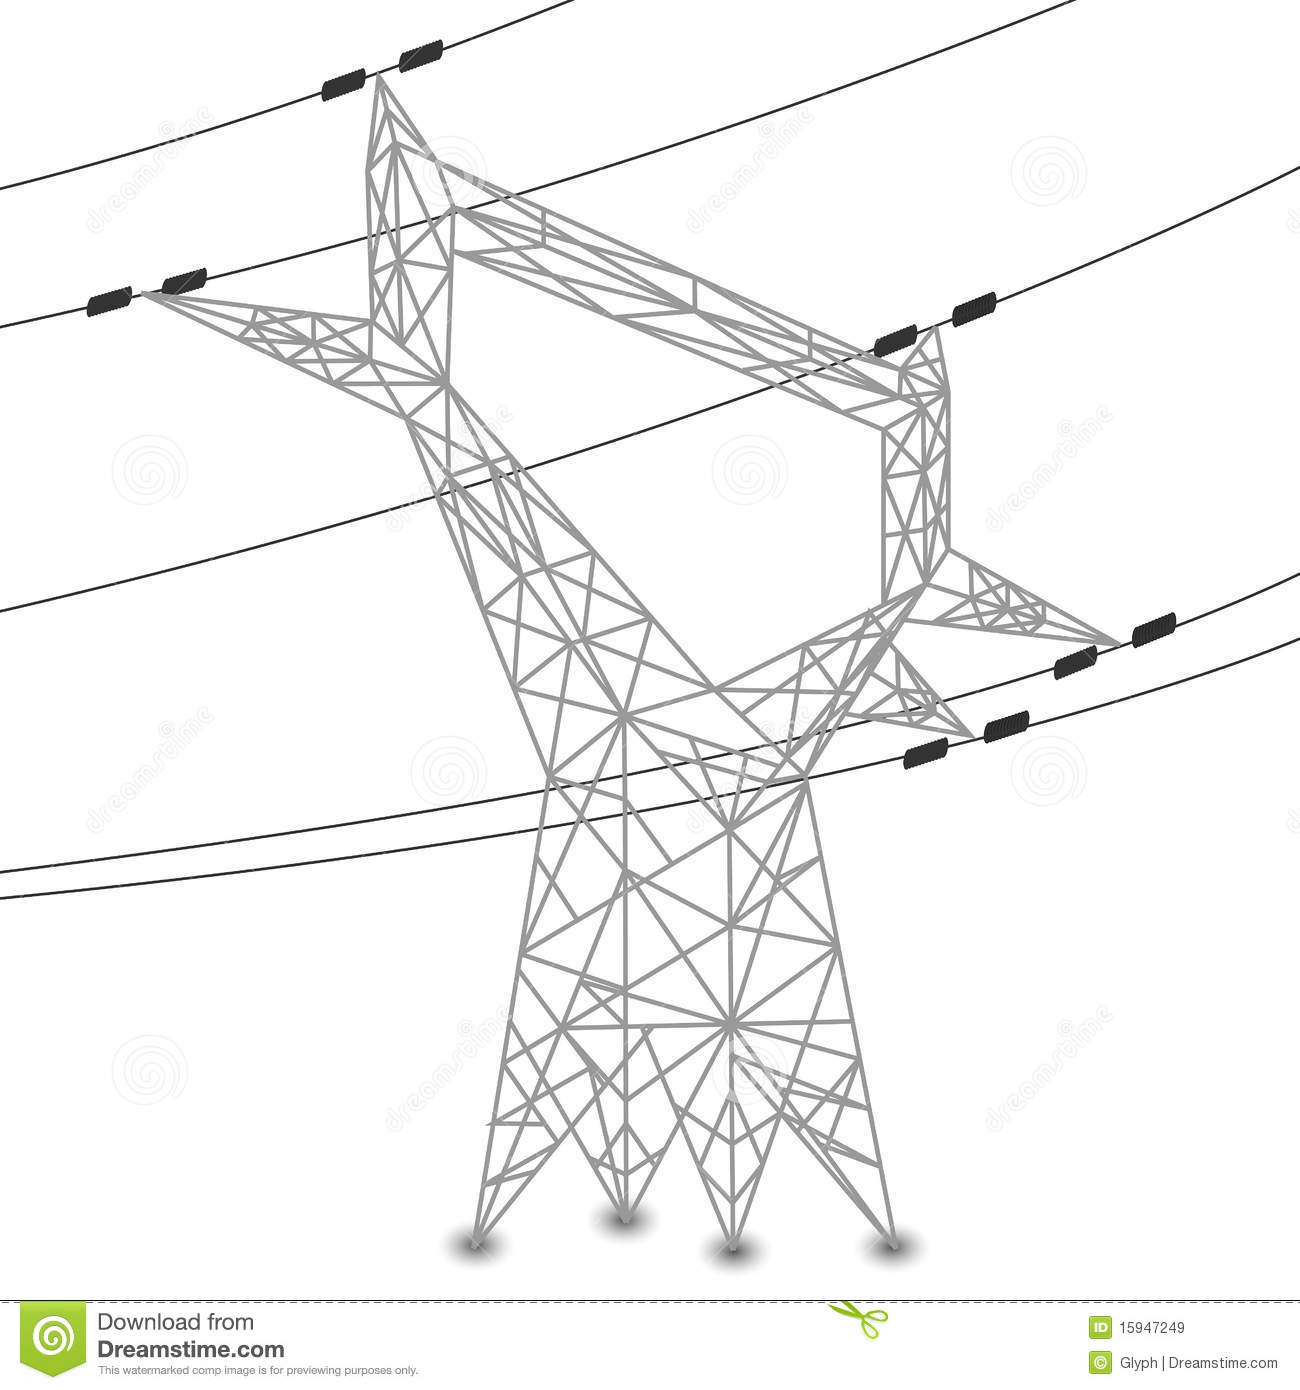 Silhouette Of Power Lines And Electric Pylon Stock Vector